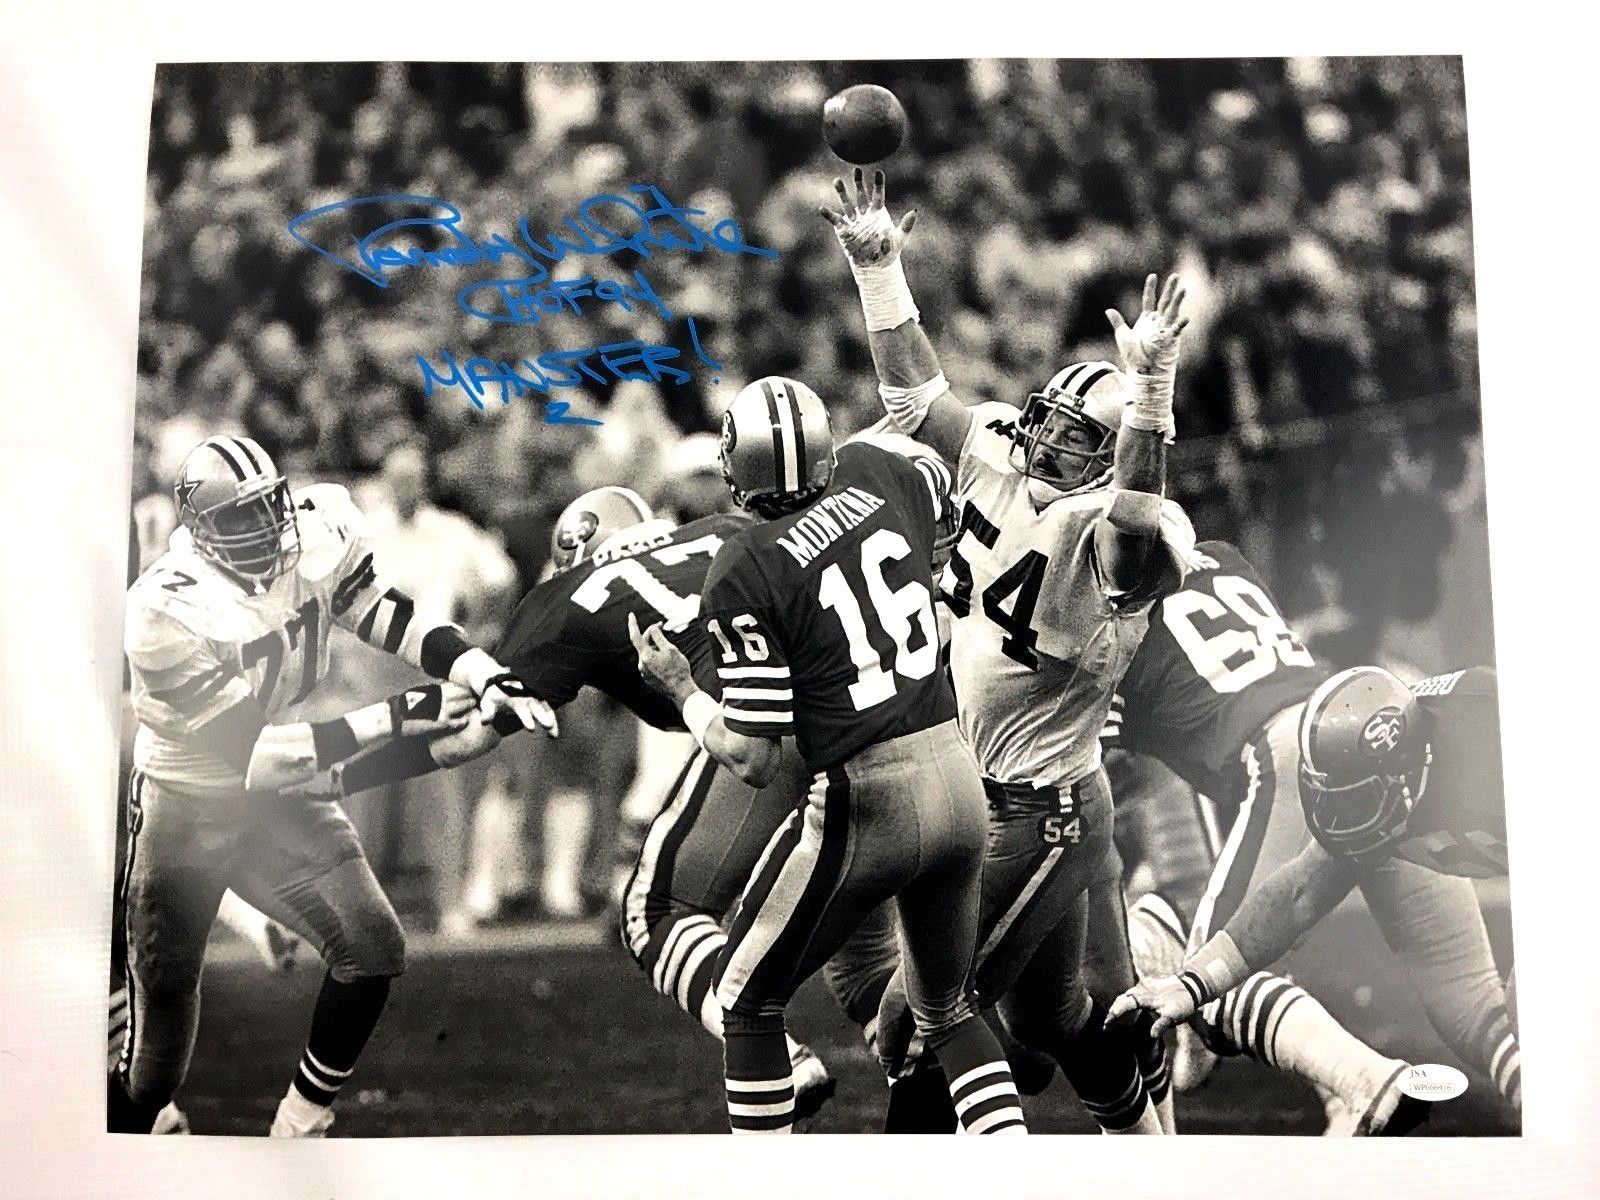 Randy White Signed 16x20 Photo Maryland Terrapins Autograph JSA Dallas Cowboys 4